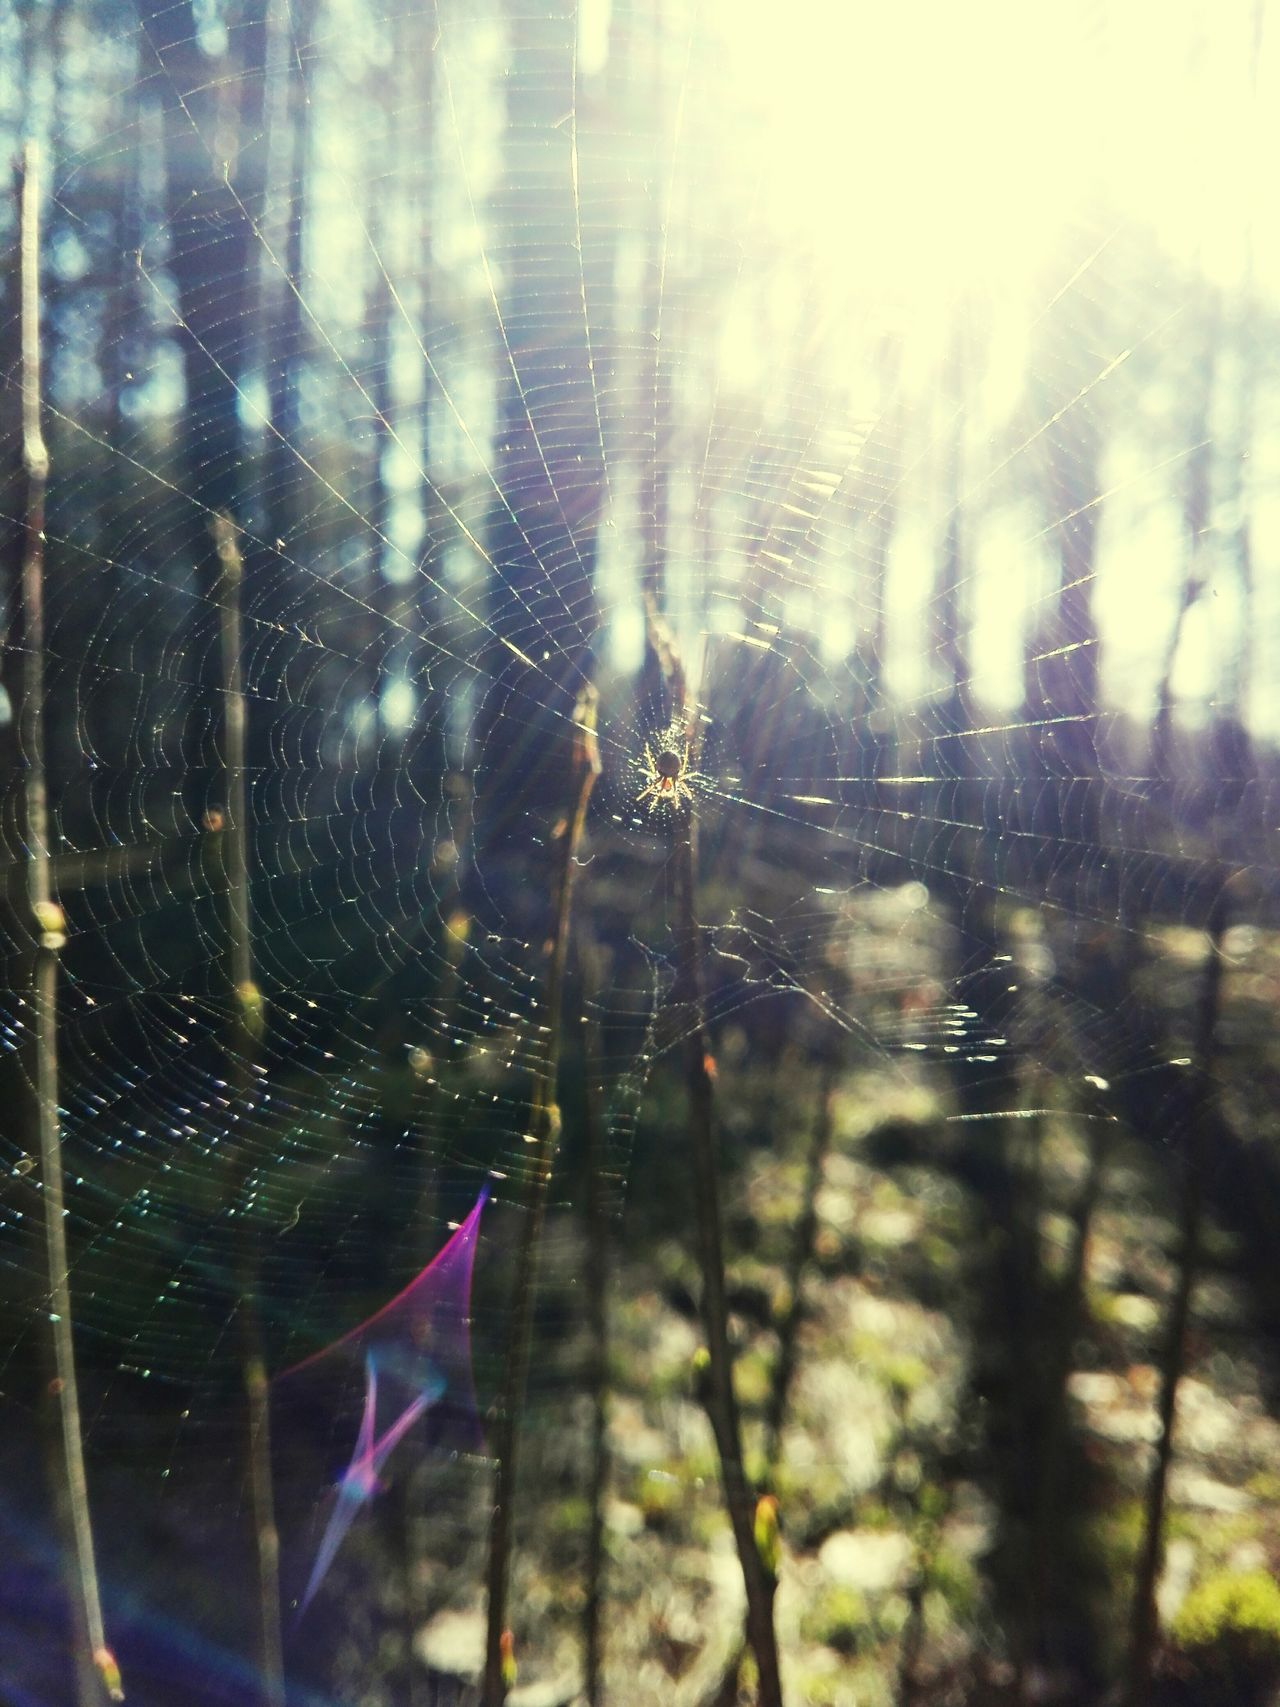 Nature Drop Spider Web Focus On Foreground Close-up Day Fragility No People Beauty In Nature Outdoors Web Freshness